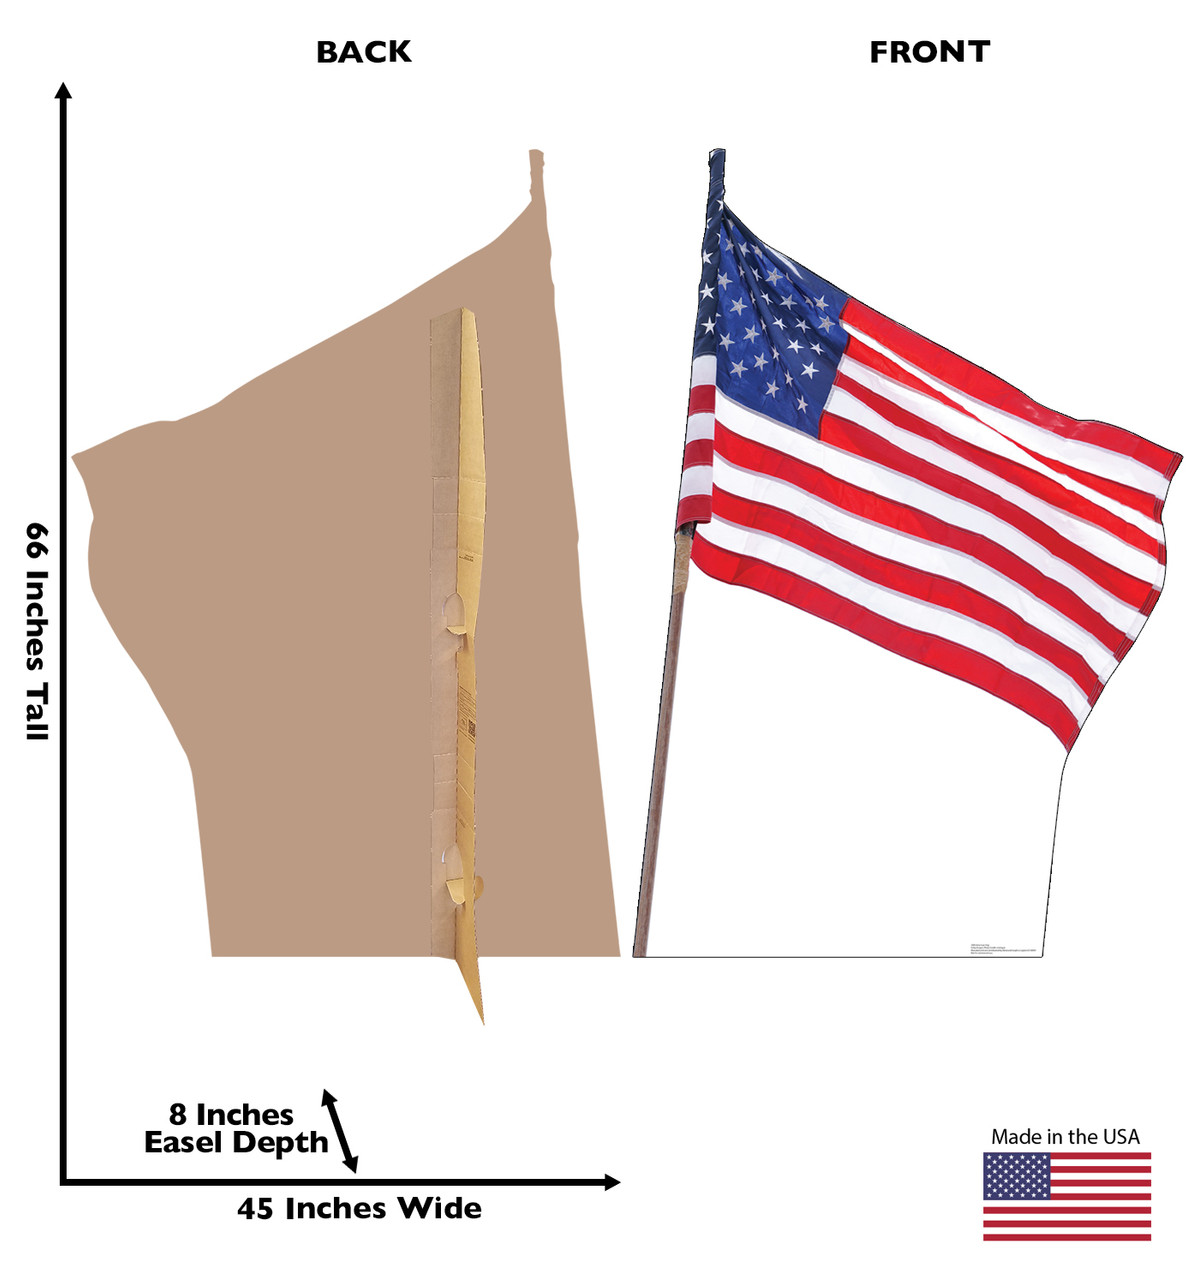 Cardboard standee of the American Flag Front and Back View